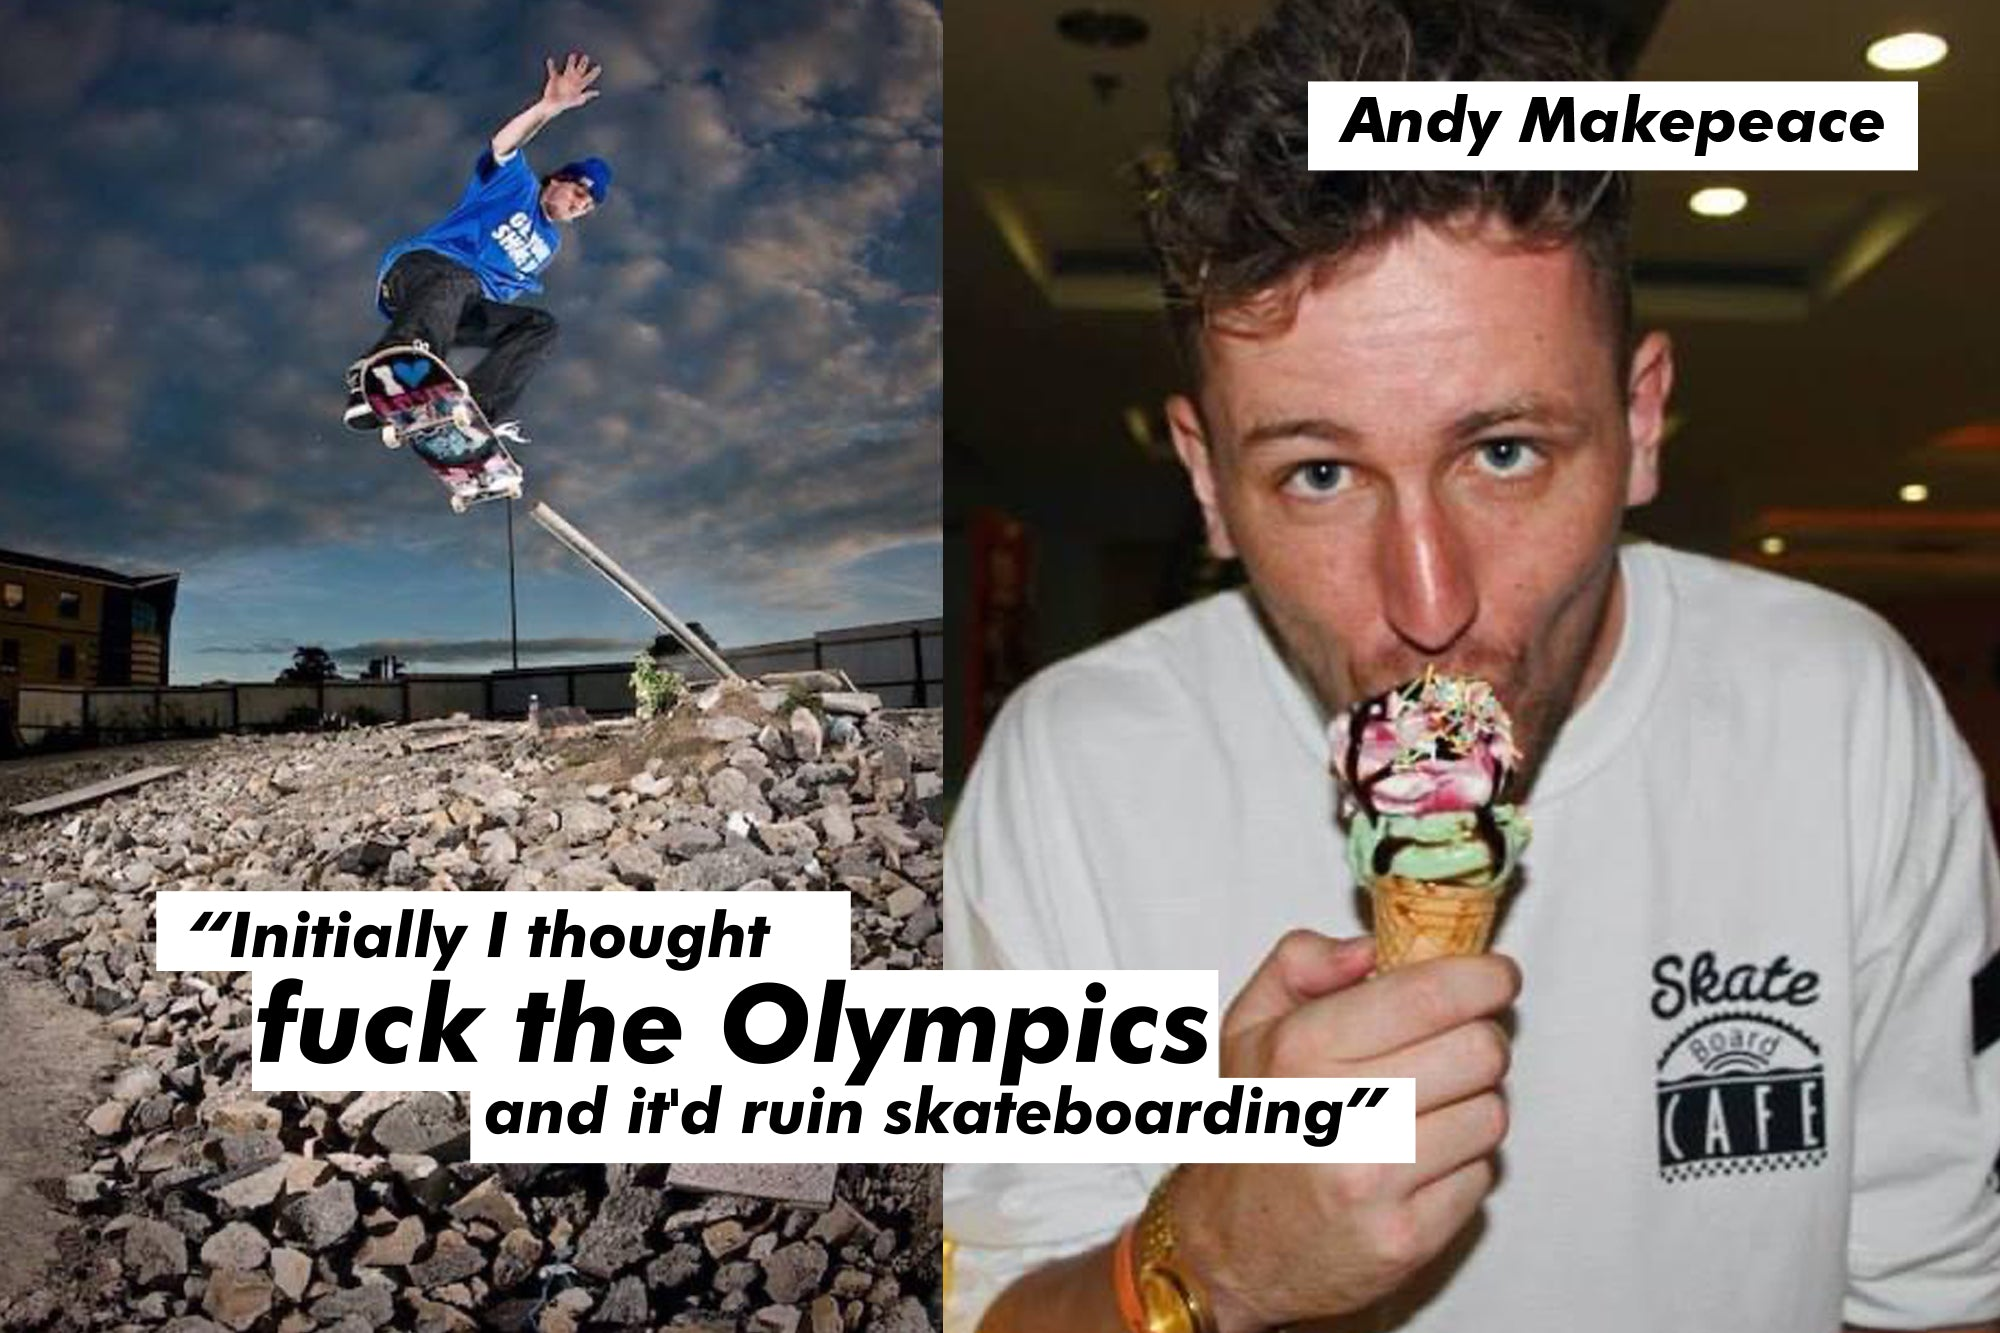 Andy_Makepeace_Skateboarding_in_the_Olympics_1